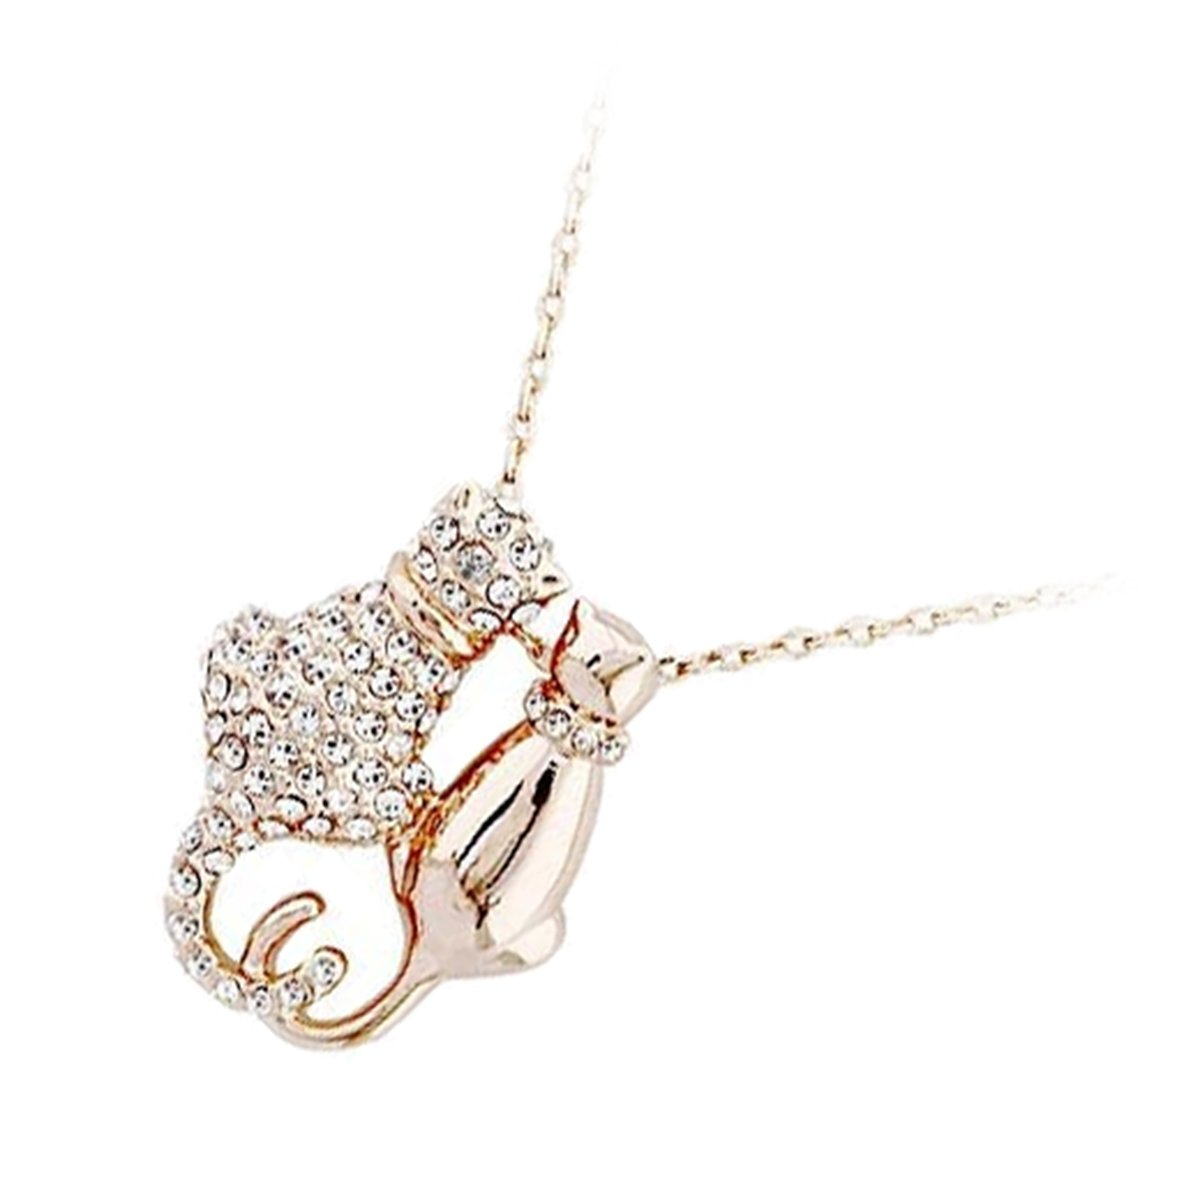 Amazon.com: GWG 18K Gold Plated Couple of Cats Covered with Diamond Clear Stones Animal Pendant Necklace for Women: Jewelry